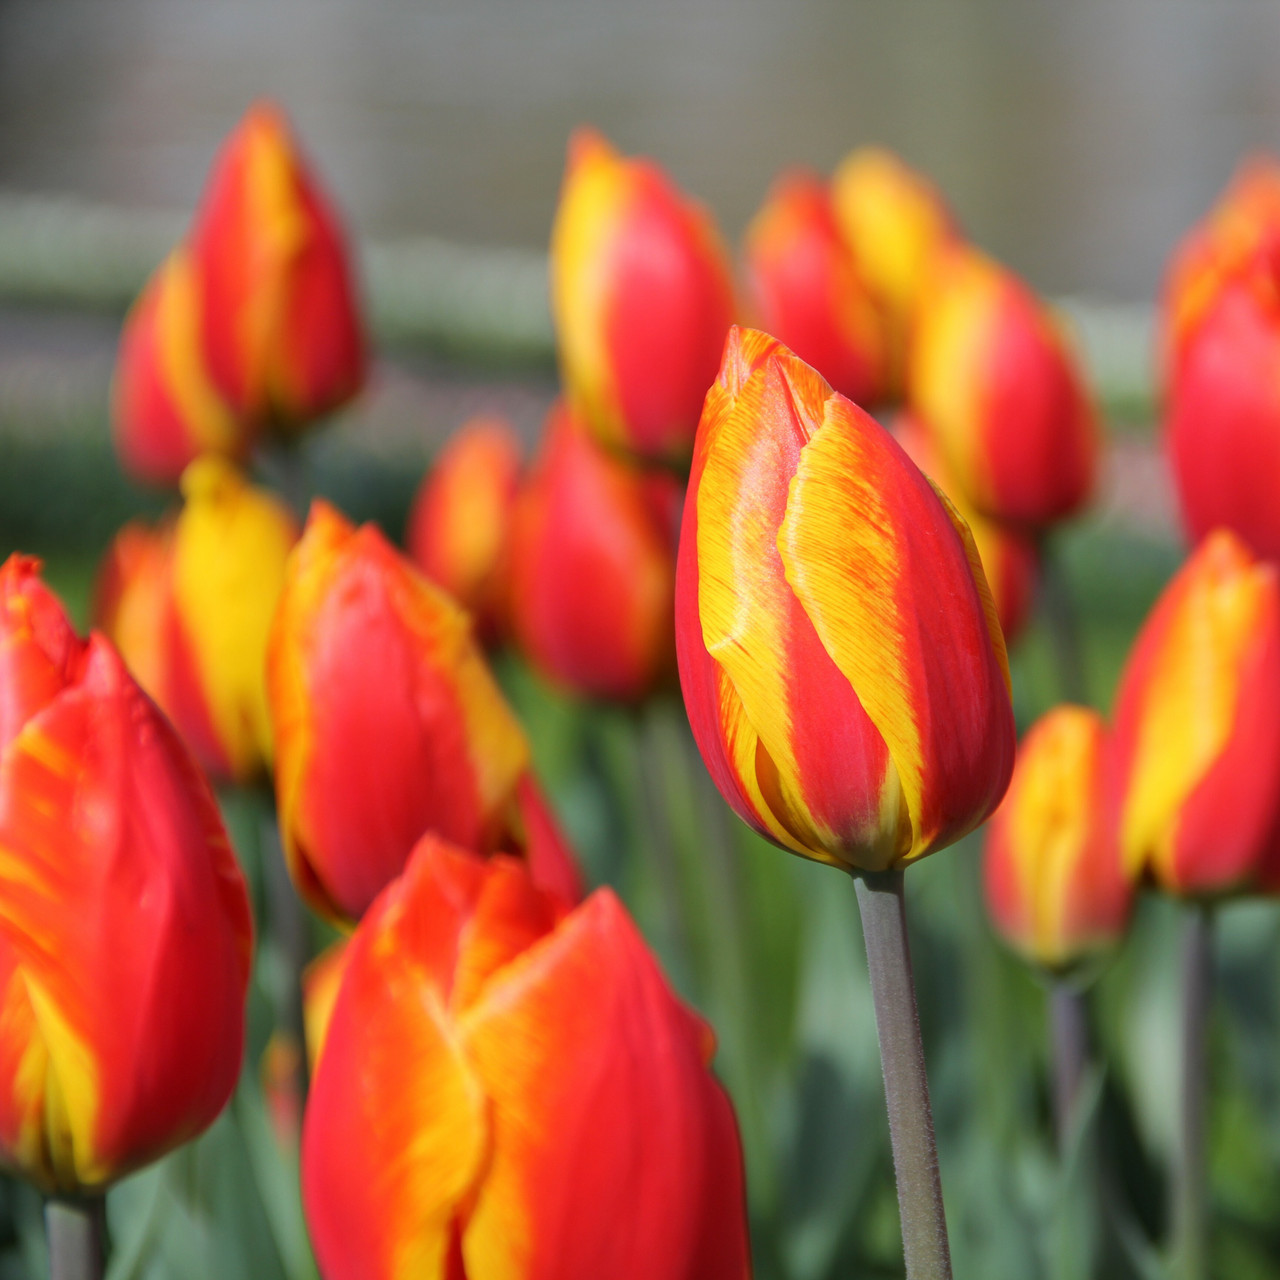 Division 1 - Single Early Tulips